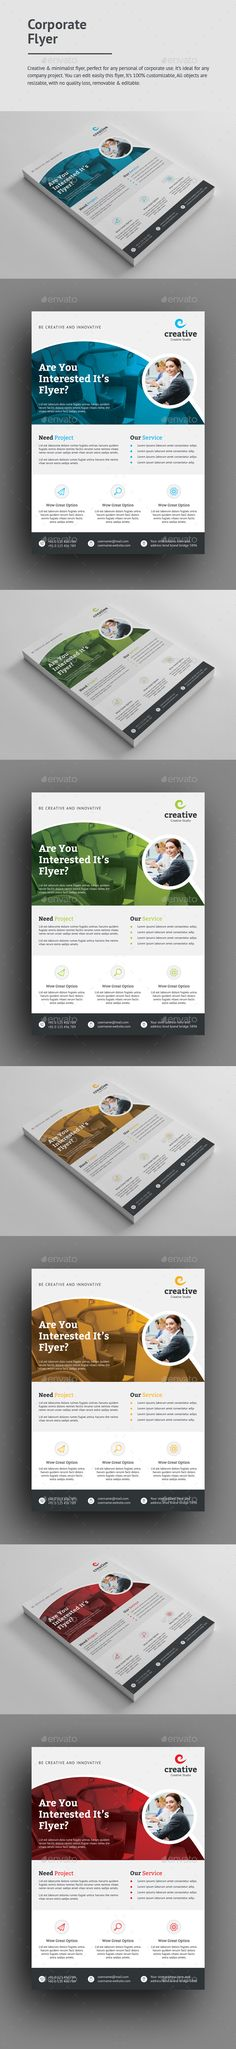 #creative #modern #Professional #Corporate #Flyer #template - #business Flyers #design. download: https://graphicriver.net/item/corporate-flyer/20283713?ref=yinkira